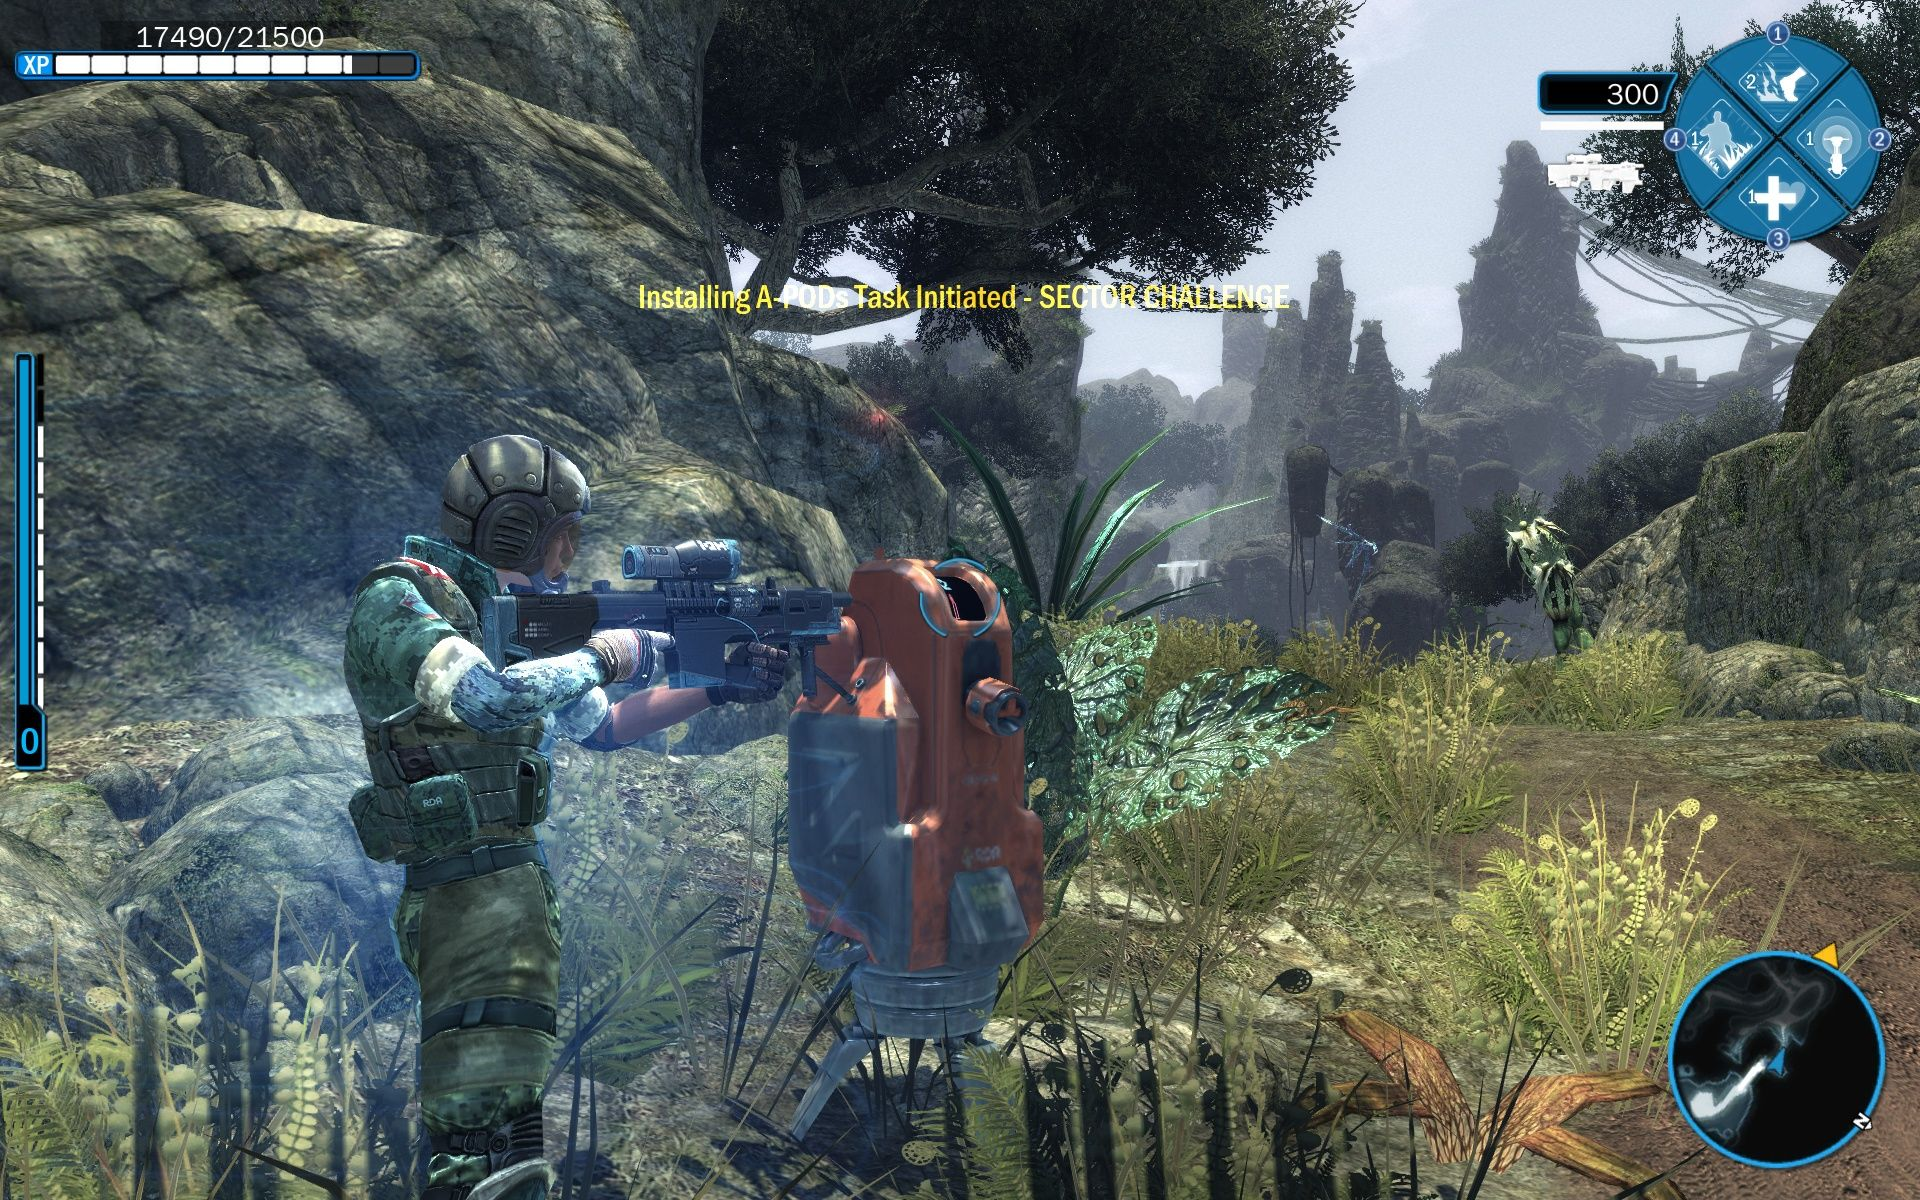 James Cameron S Avatar The Game : James cameron s avatar the game screenshots for windows